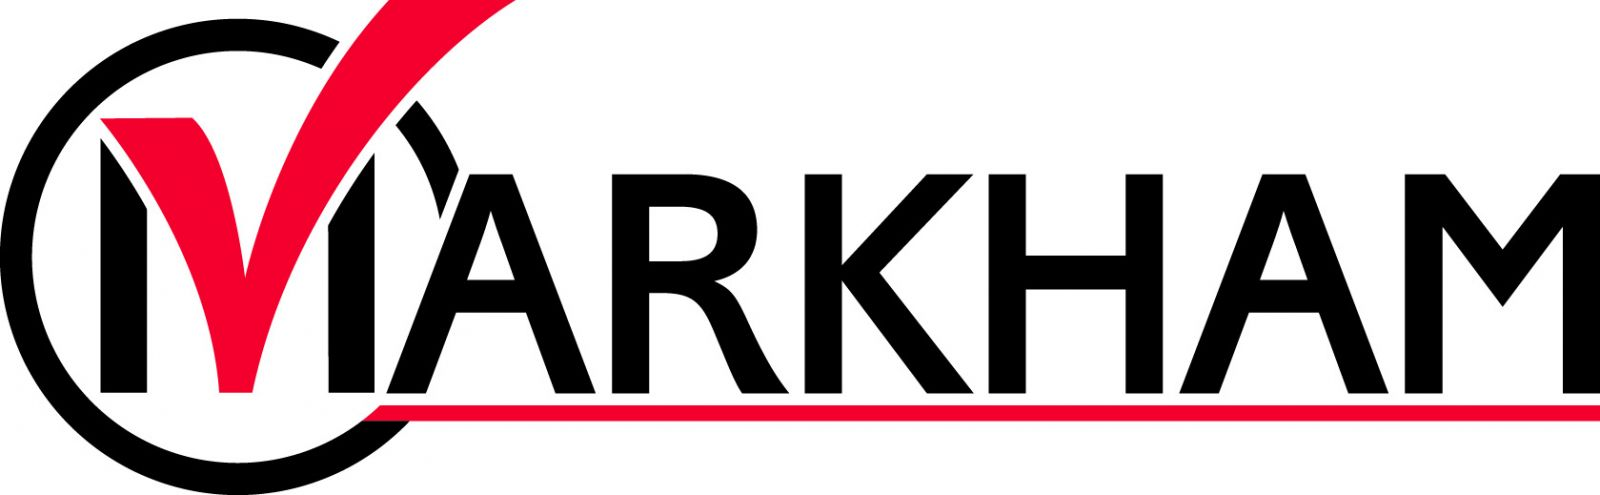 Image result for logo images for markham ontario